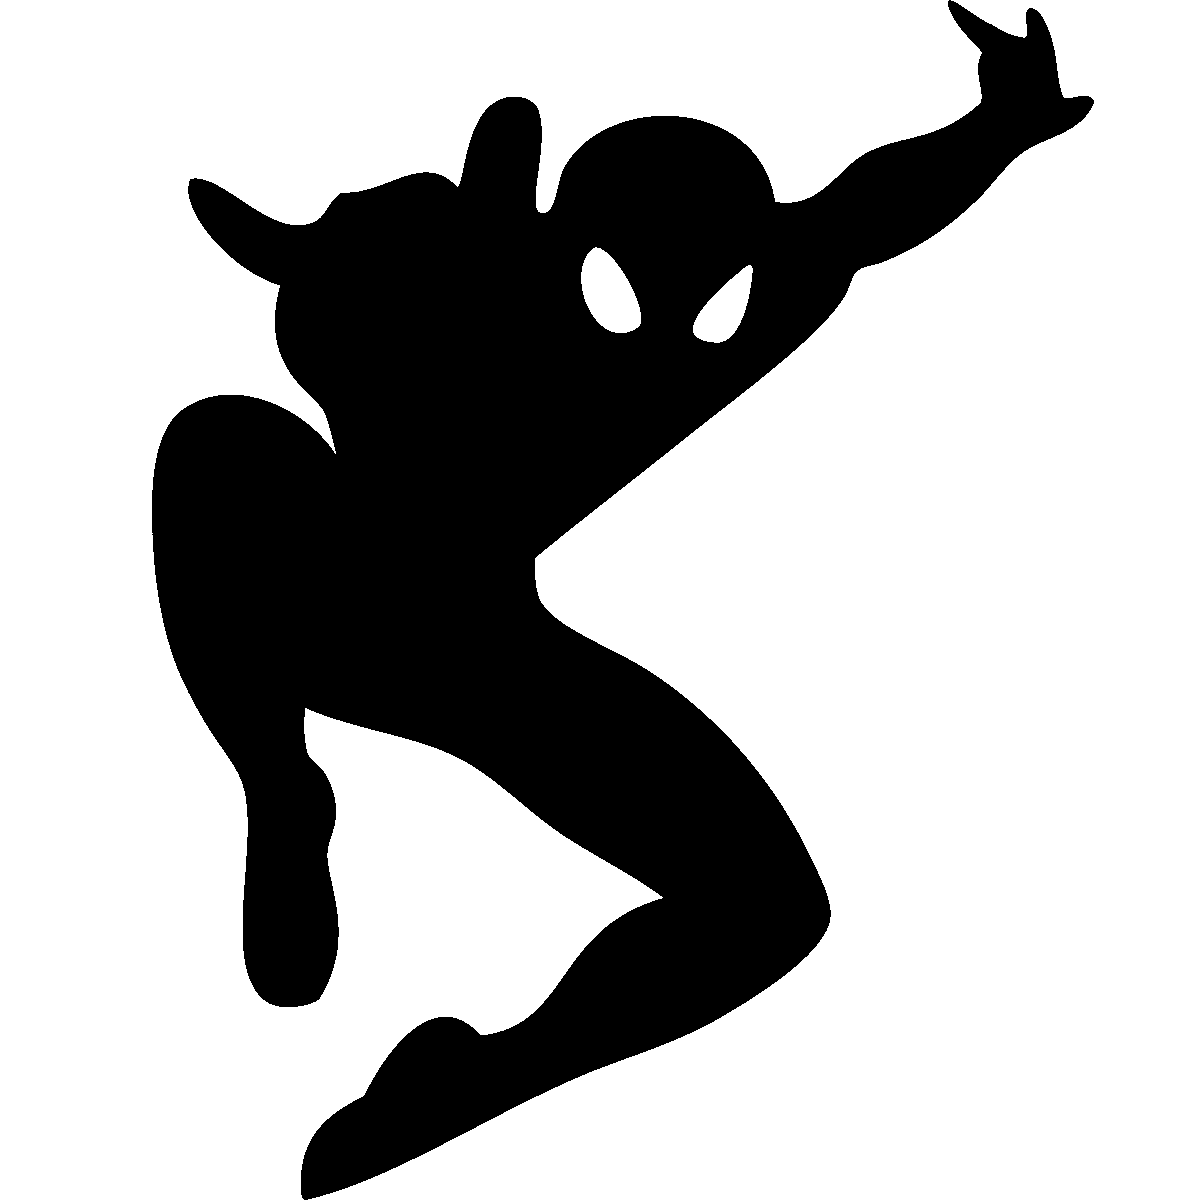 1200x1200 Spiderman Shape